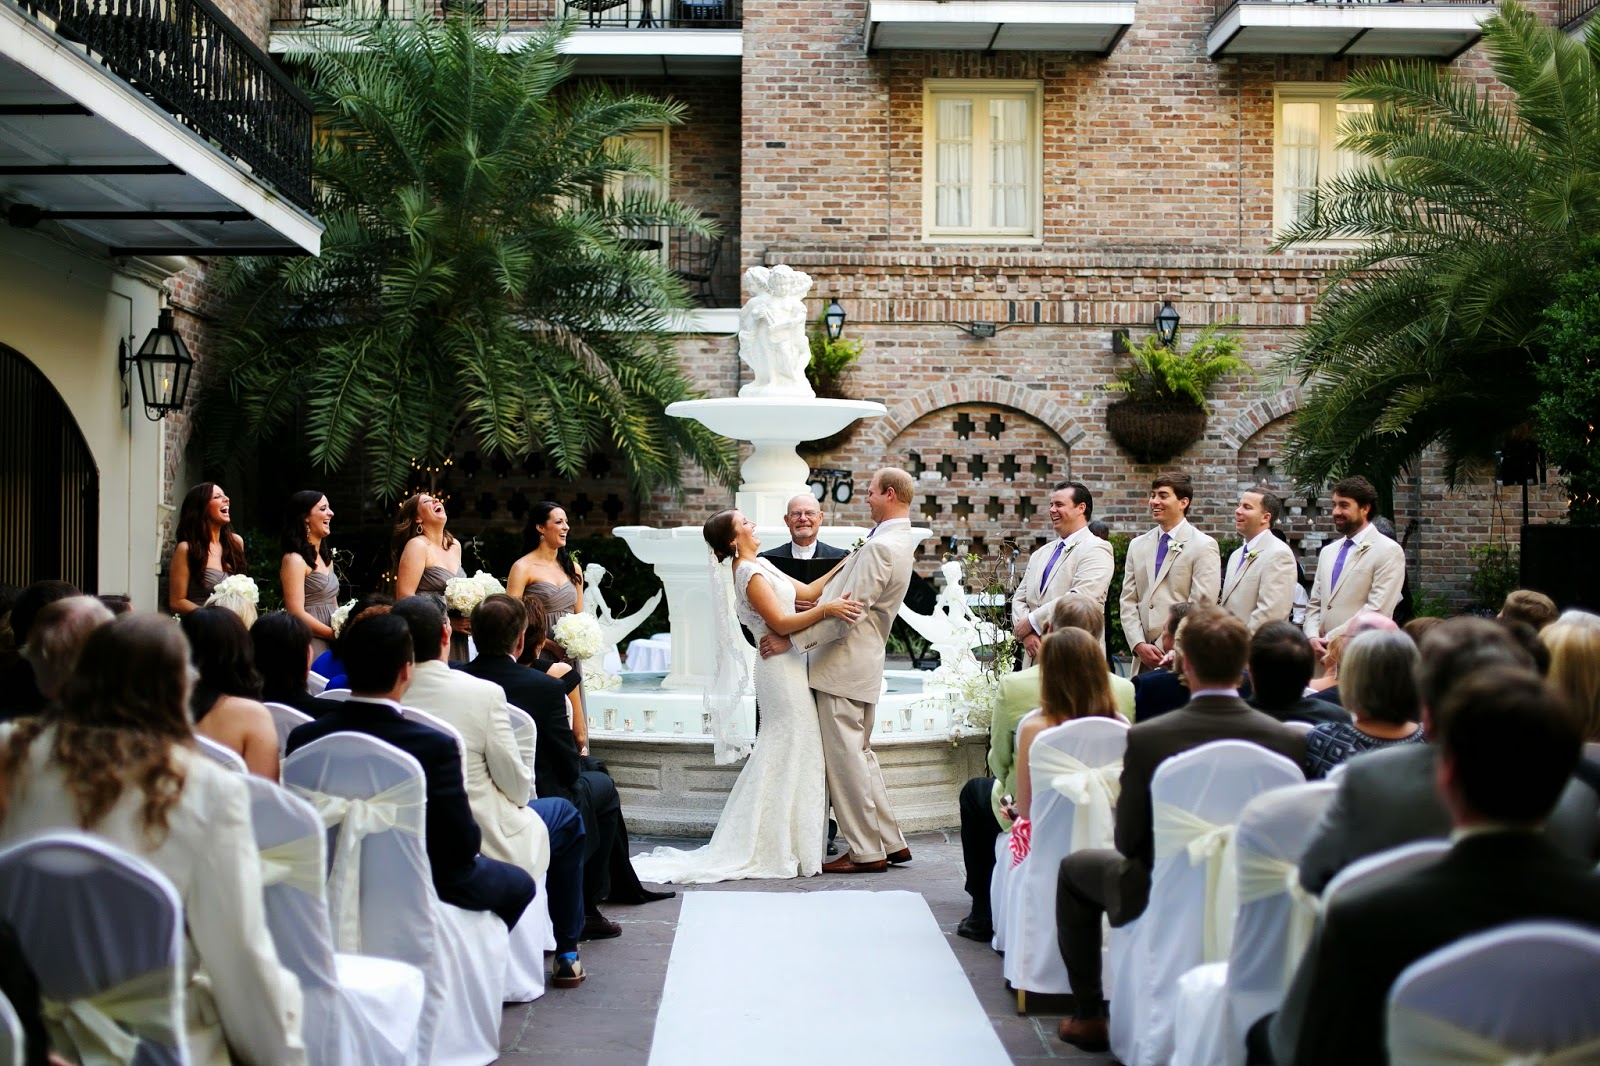 New orleans weddings chaplain schwehm at maison dupuy for Hotel maison